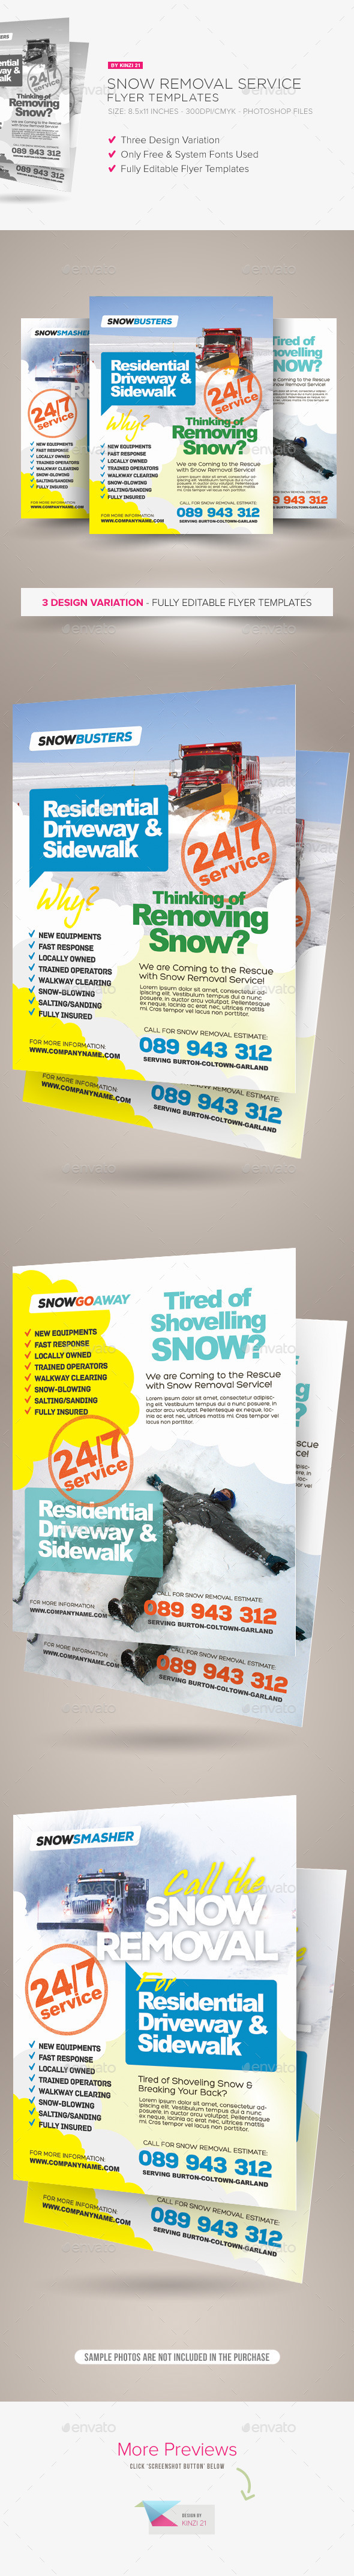 GraphicRiver Snow Removal Service Flyers 11855534